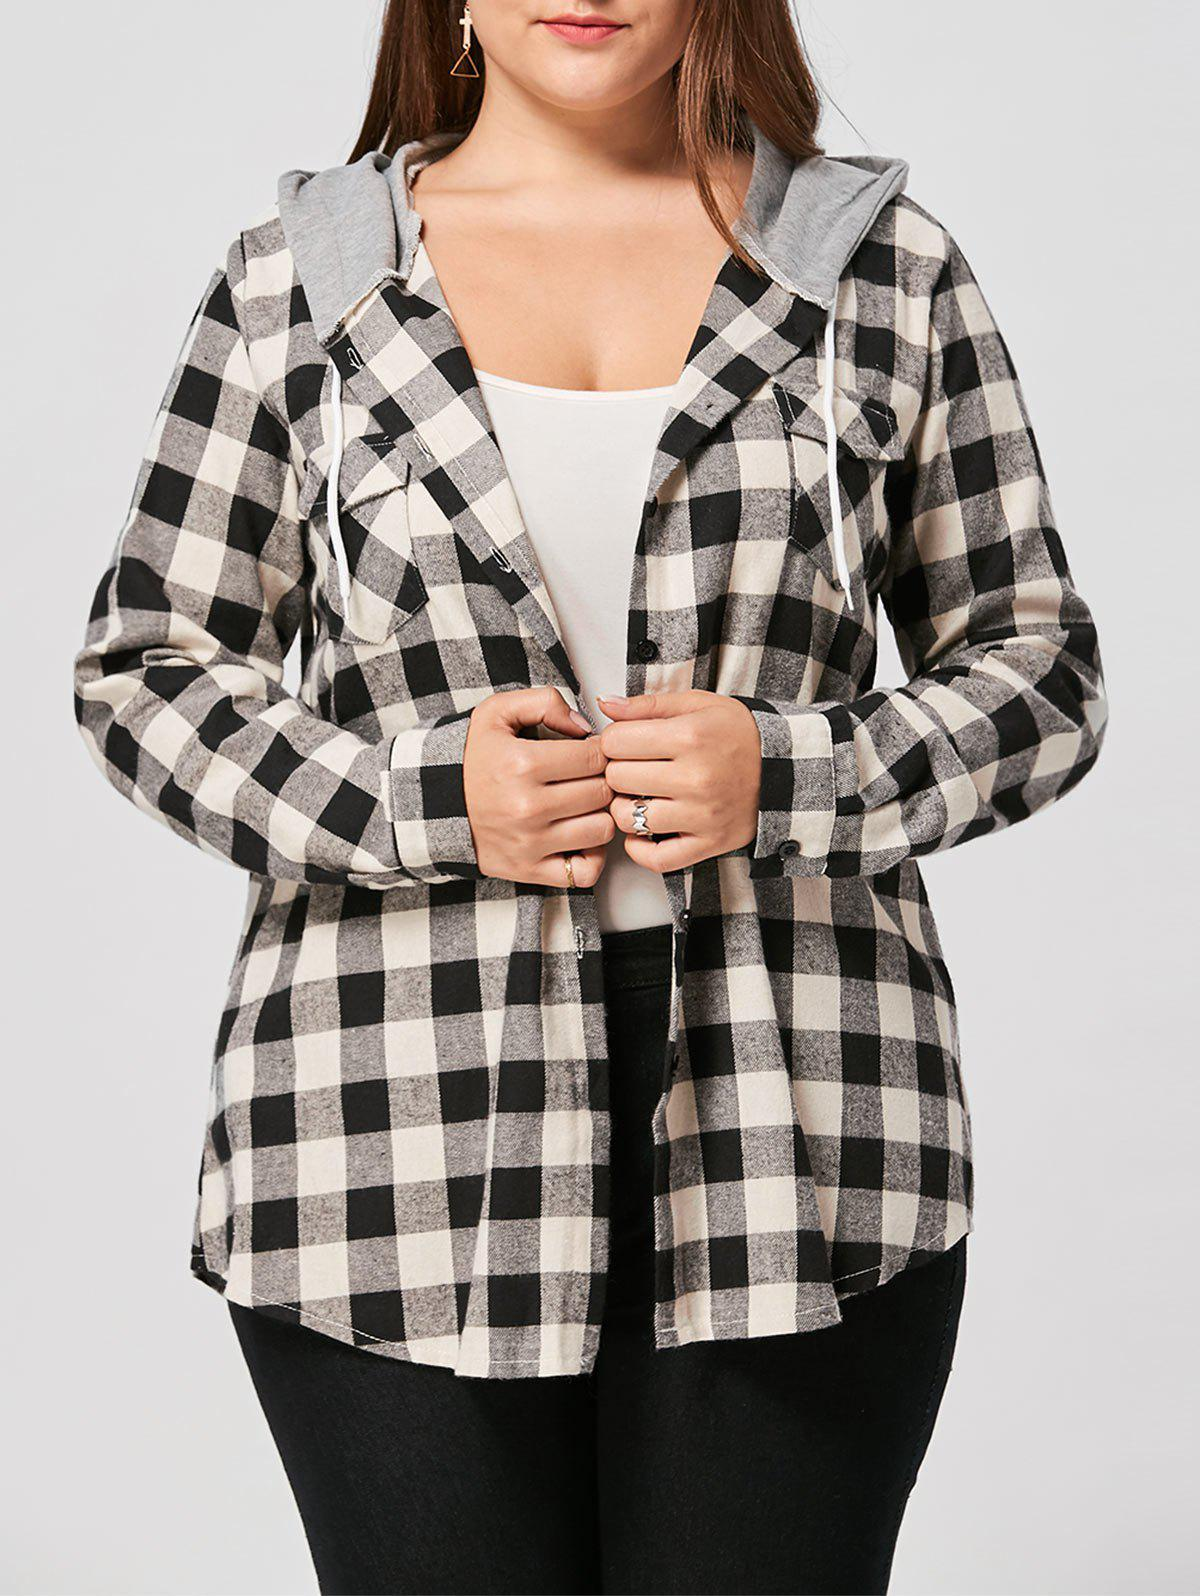 Plus Size Drawstring Neck Plaid Shirt HoodieWOMEN<br><br>Size: 5XL; Color: COLORMIX; Material: Polyester,Spandex; Shirt Length: Long; Sleeve Length: Full; Style: Casual; Pattern Style: Plaid; Season: Fall,Spring; Weight: 0.3700kg; Package Contents: 1 x Hoodie;